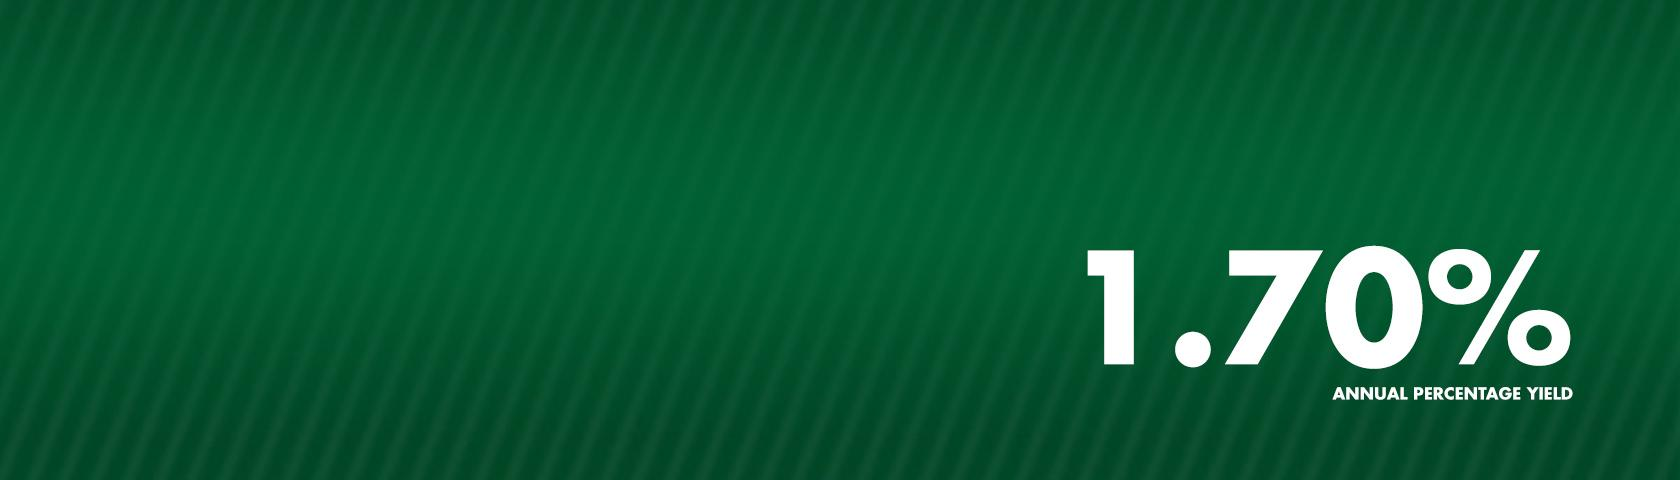 Green Background with 1.70% APY